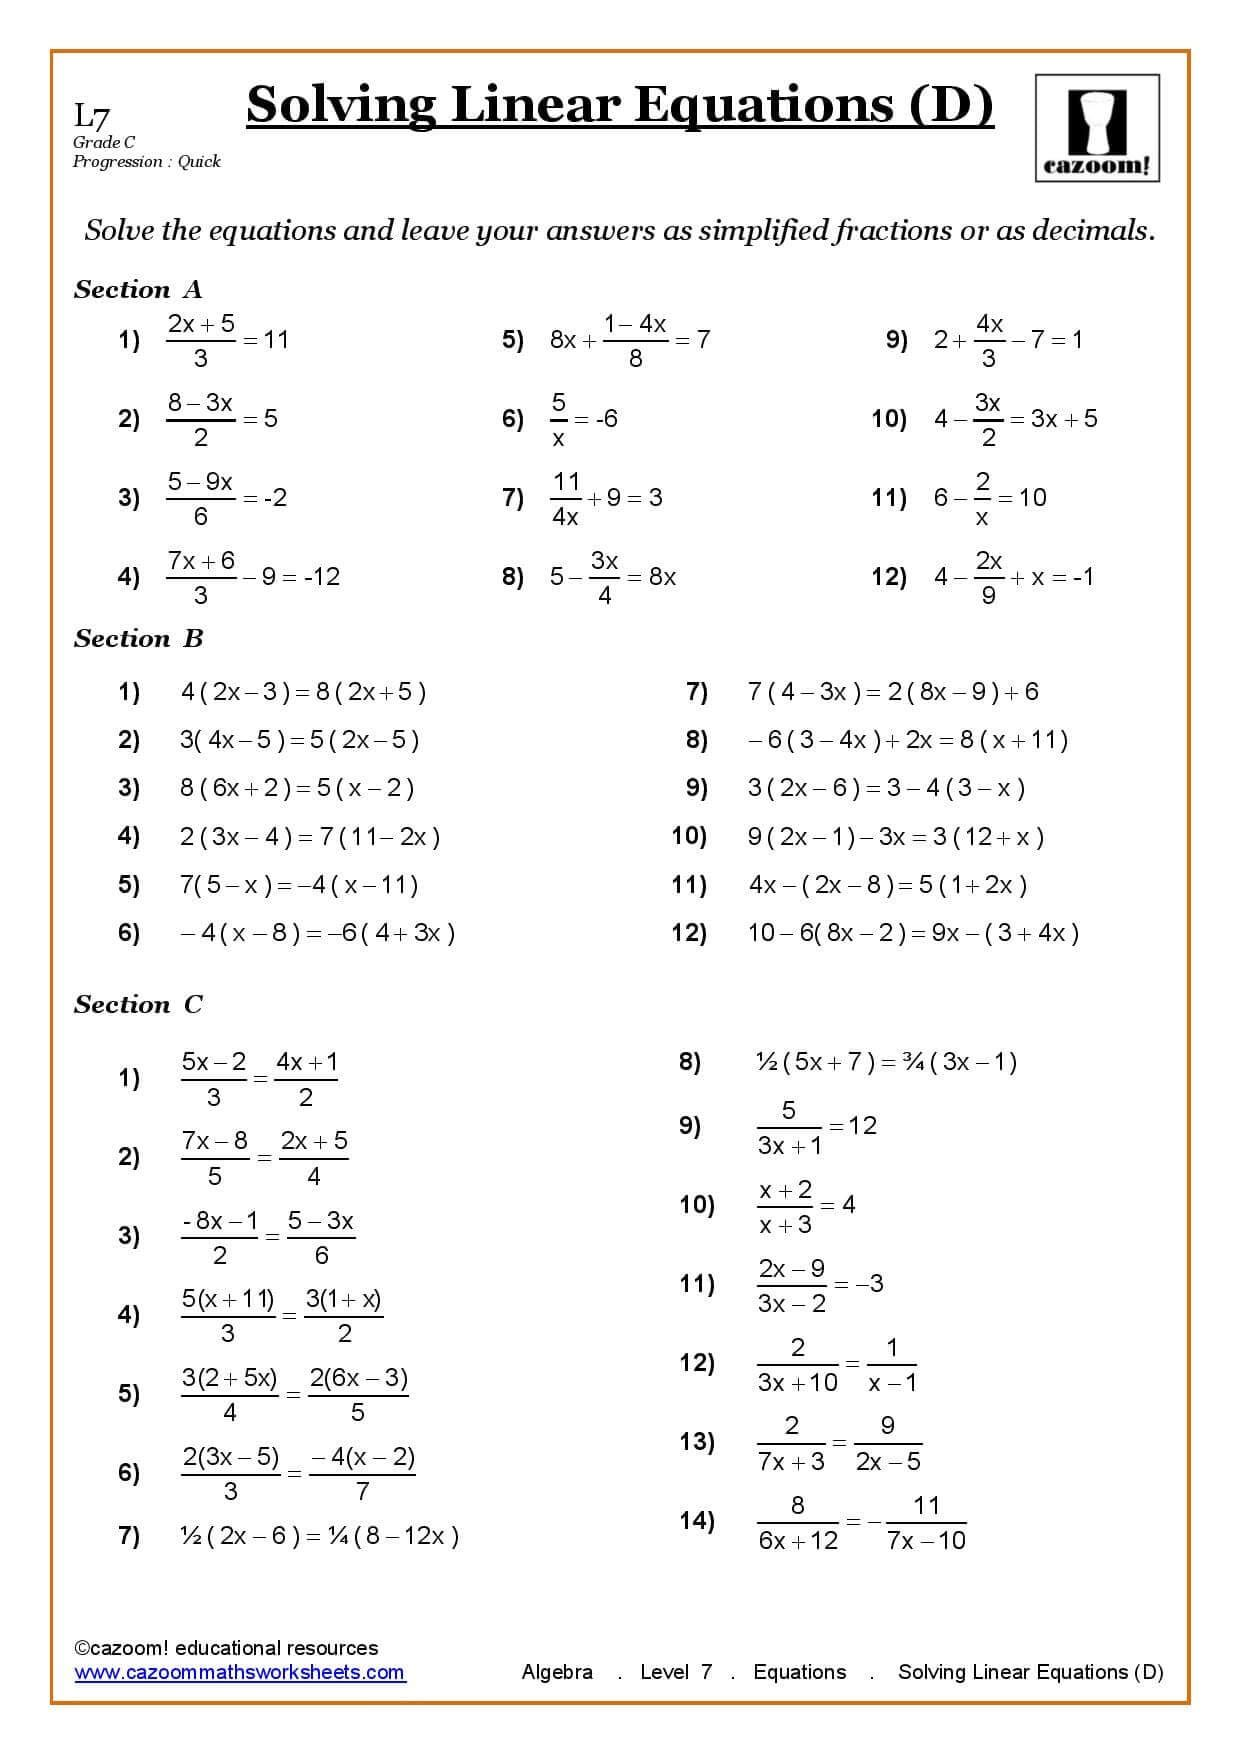 Solving Equations Maths Worksheet | fişe matematice cu A-Z | Pinterest